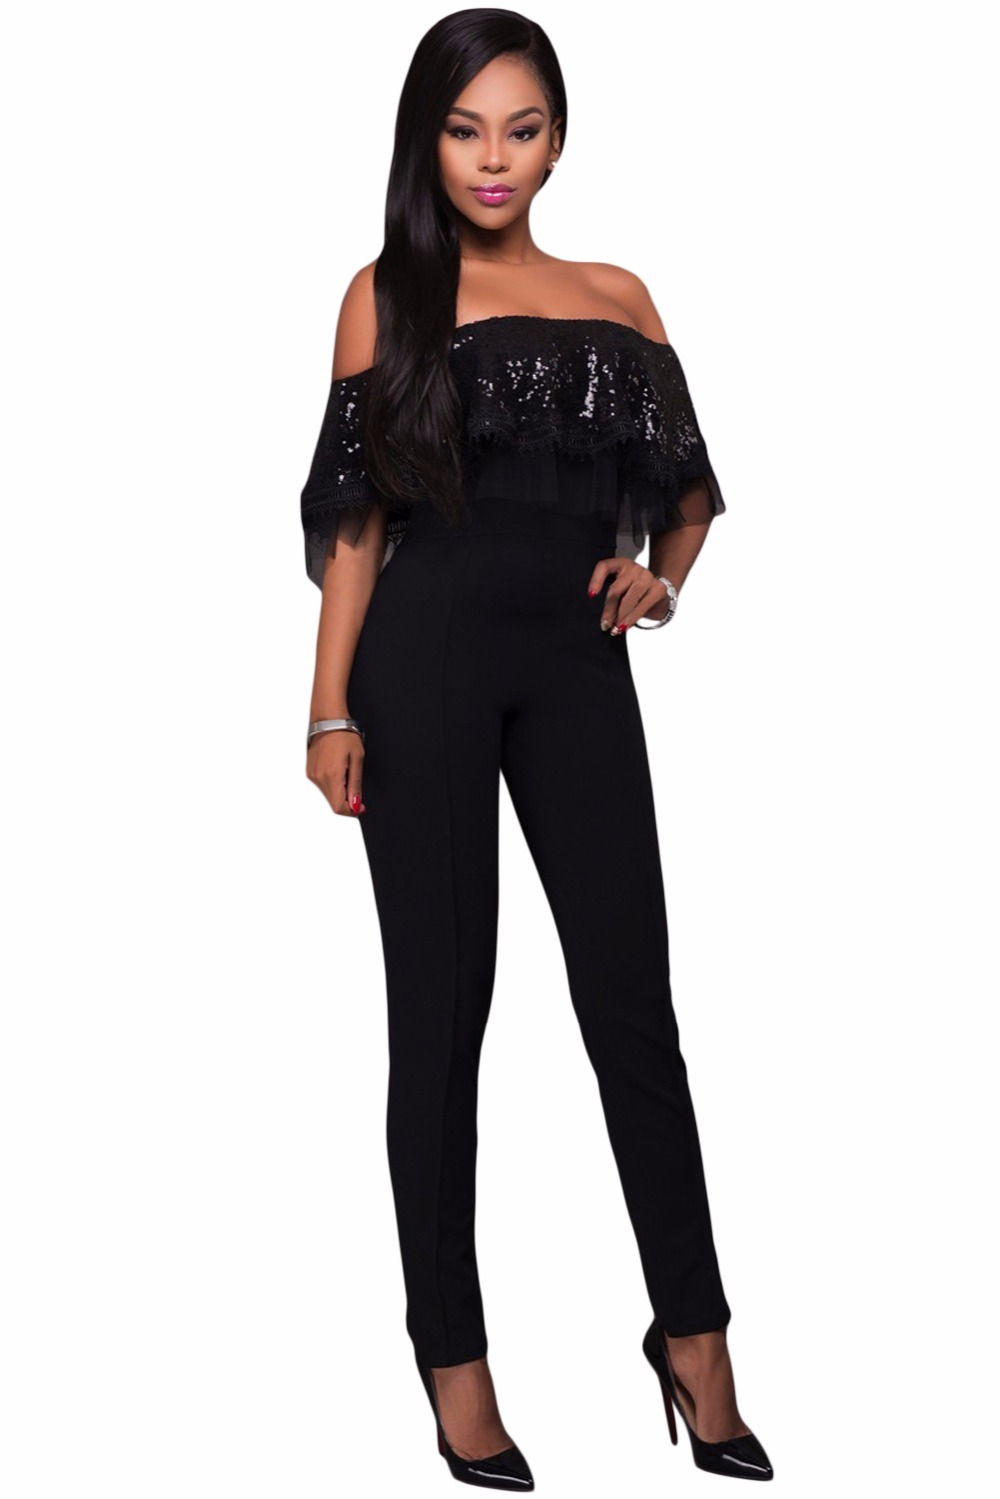 Black-Sequin-Ruffle-Top-Jumpsuit-LC64249-2-2